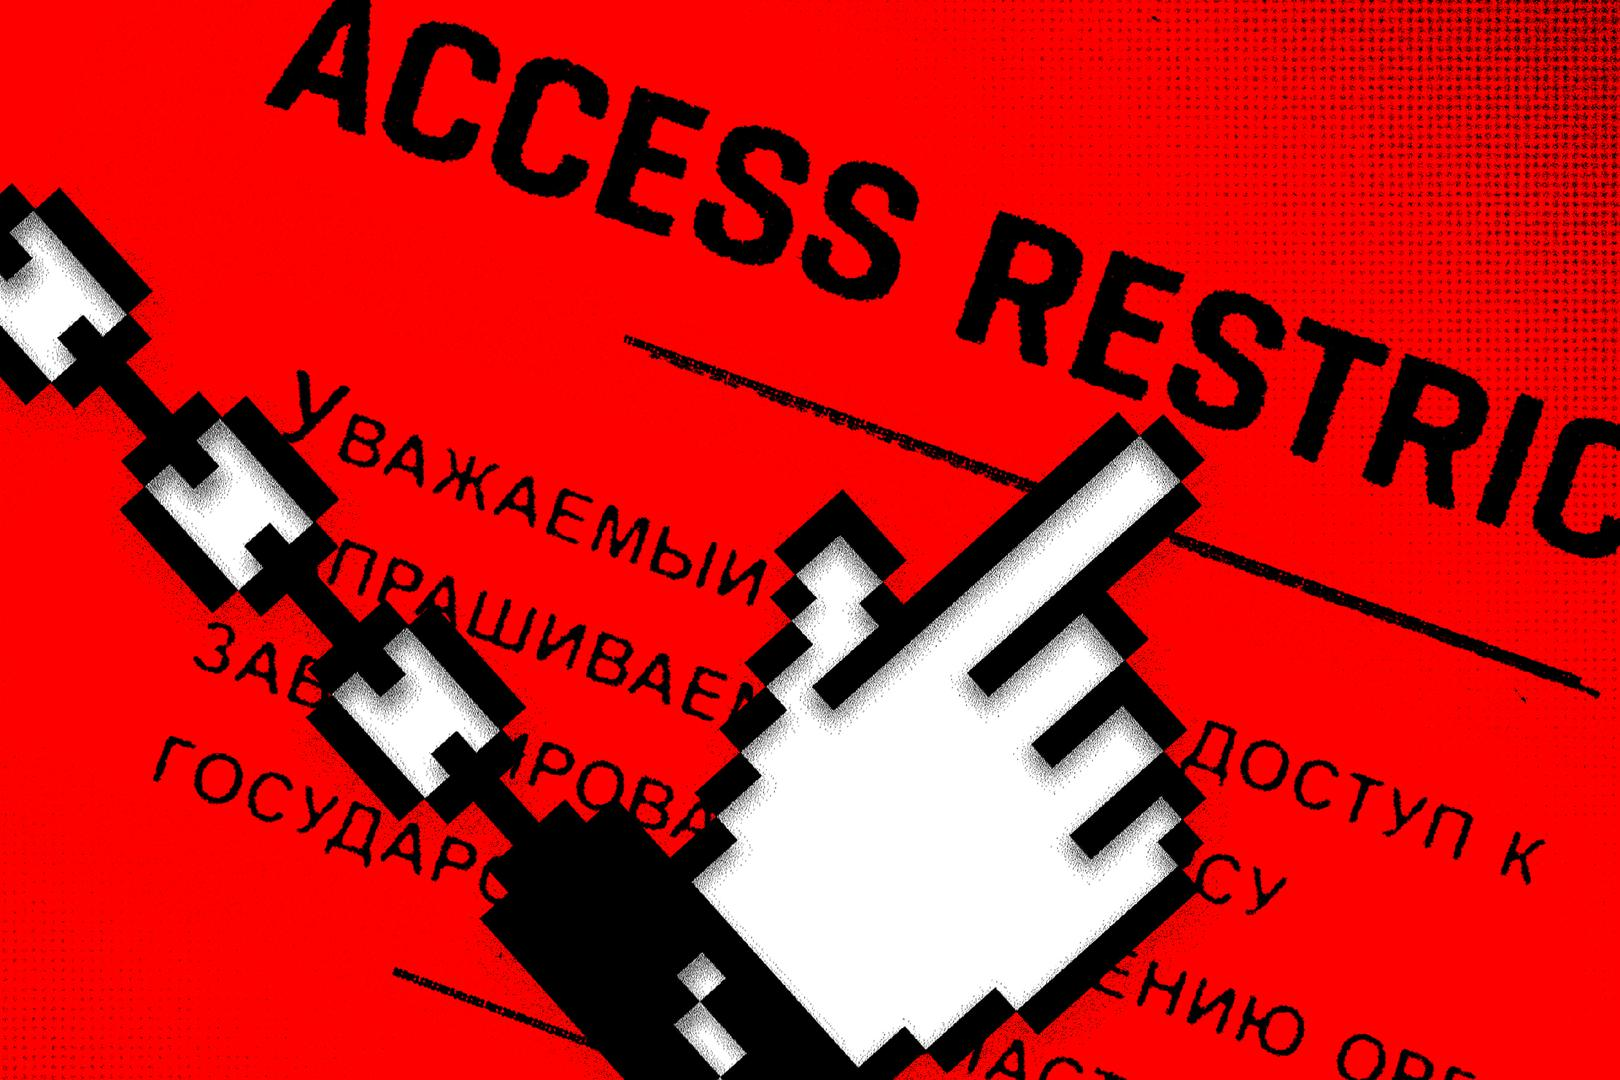 An illustration depicting a small pointer (for a mouse) chained as it scrolls over a Russian website.